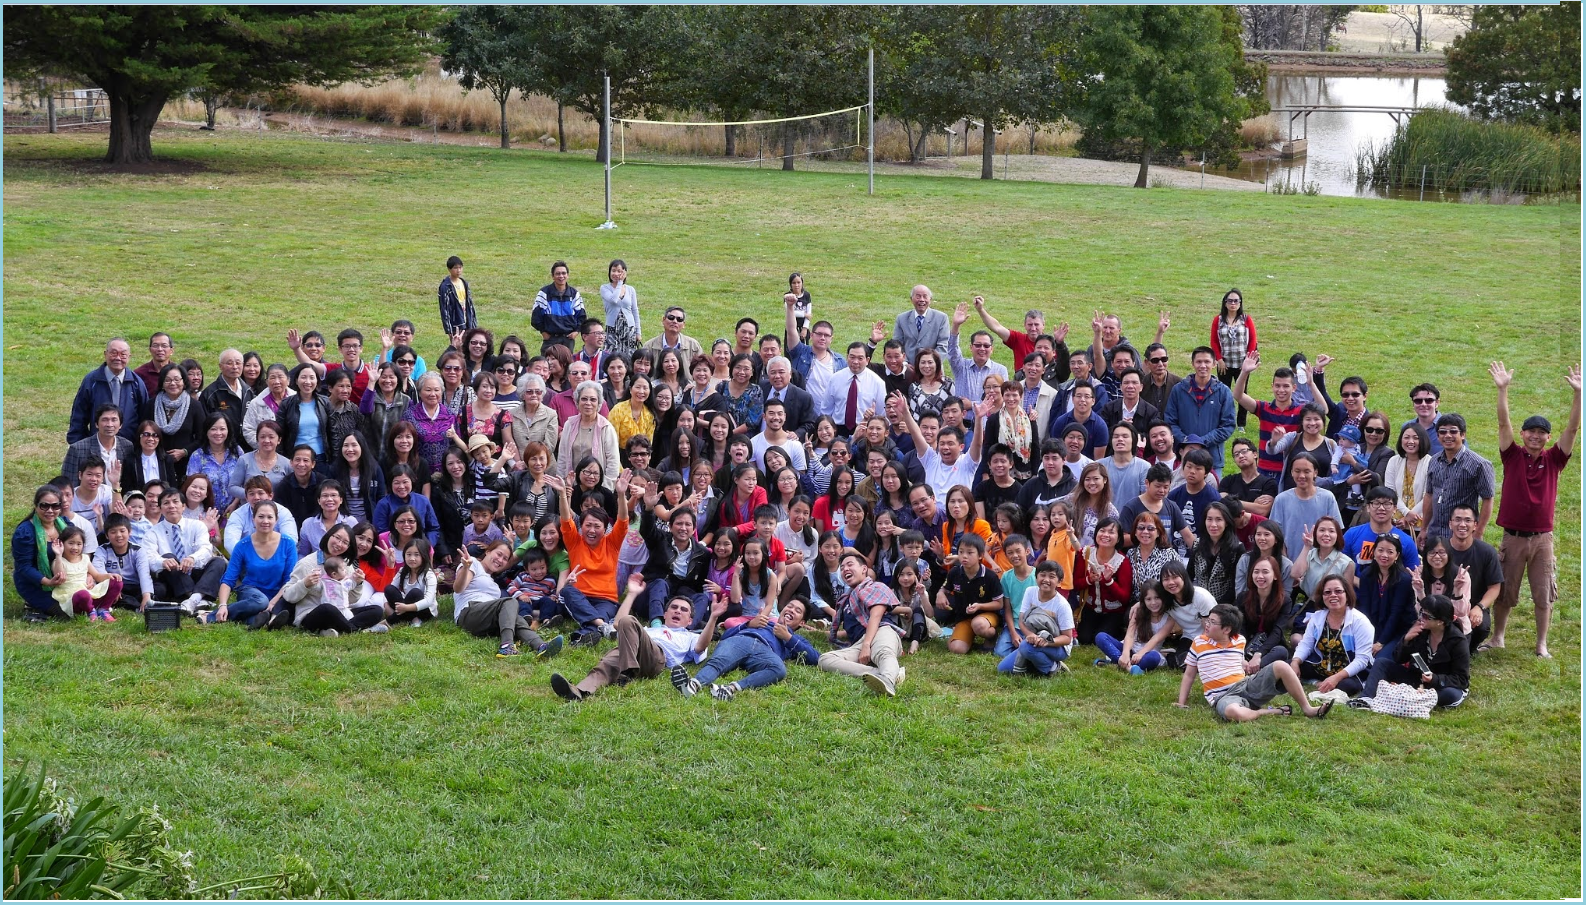 2015 Family Camp Rutherforth Park – Vietnamese Evangelical Church Melbourne